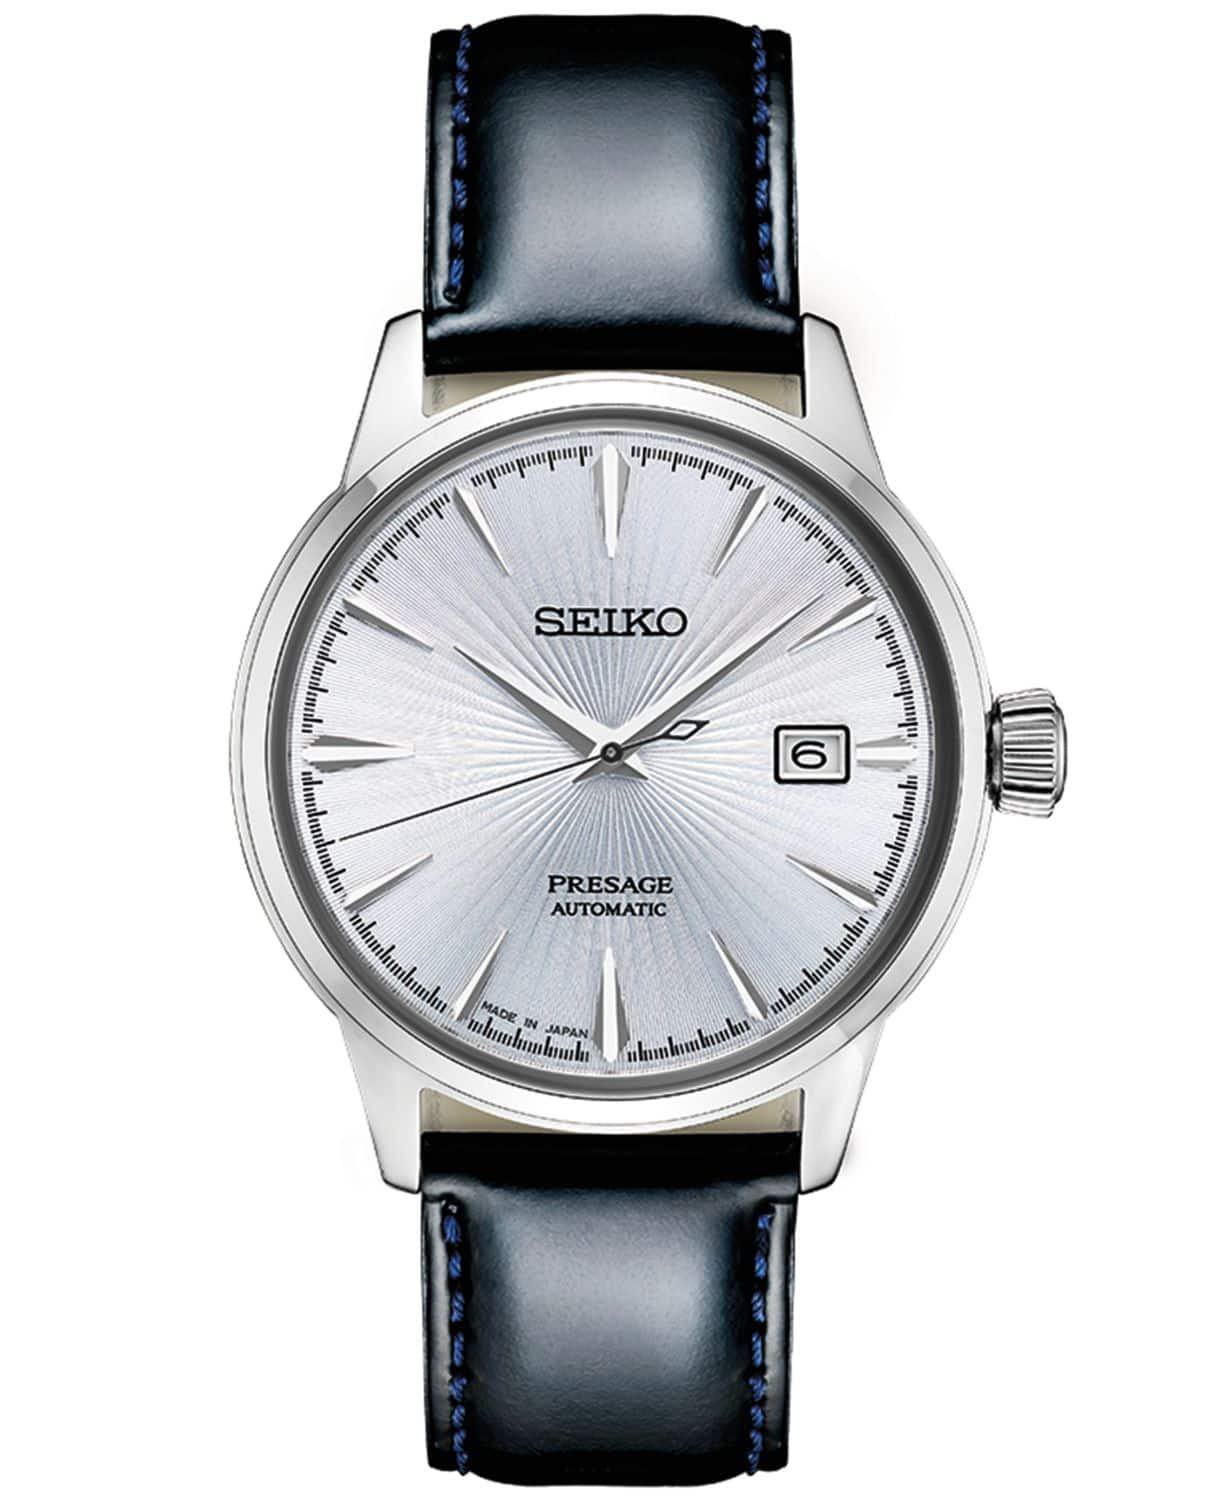 Seiko Presage Time automatic dress watch for $286 at Macys $286.87